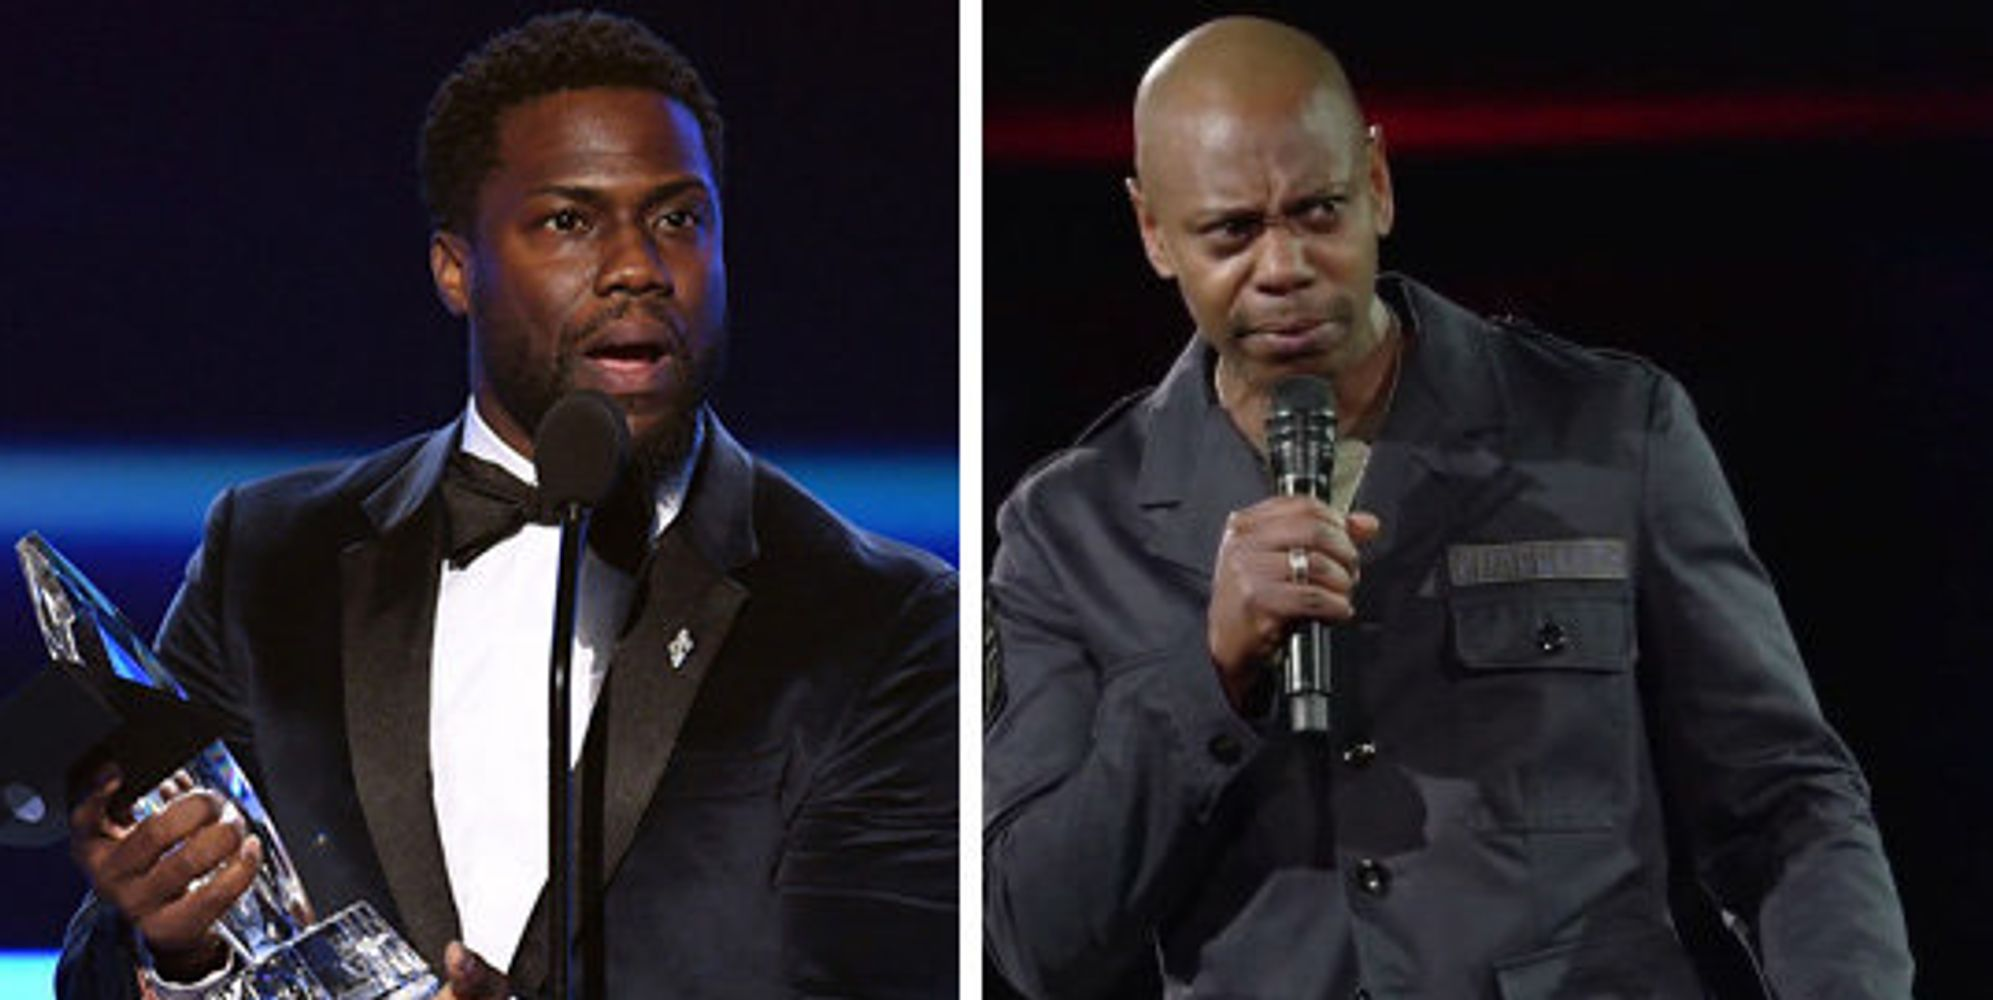 Kevin Hart Responds To Dave Chappelle Calling Him Out On Netflix